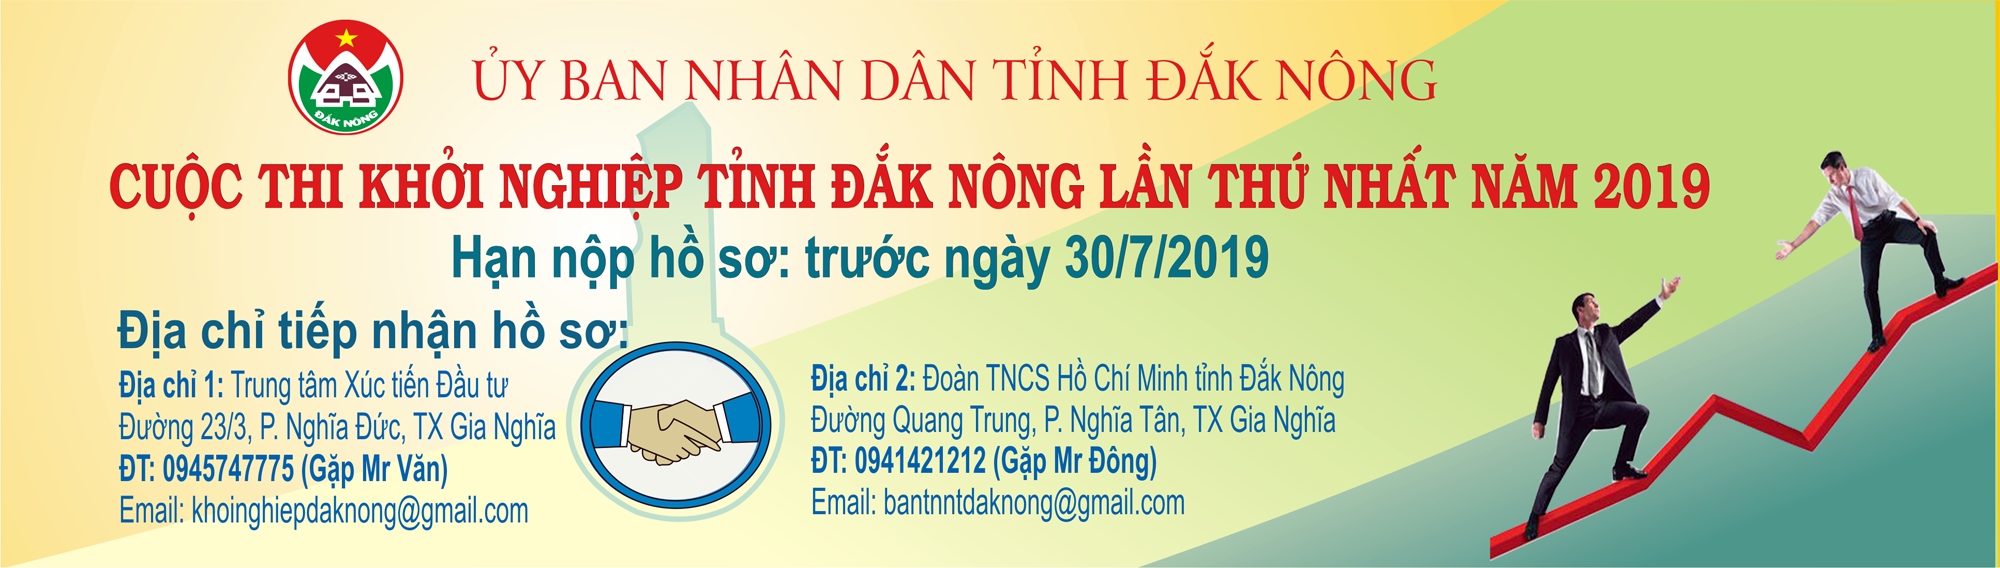 banner khoi nghiep 2.png